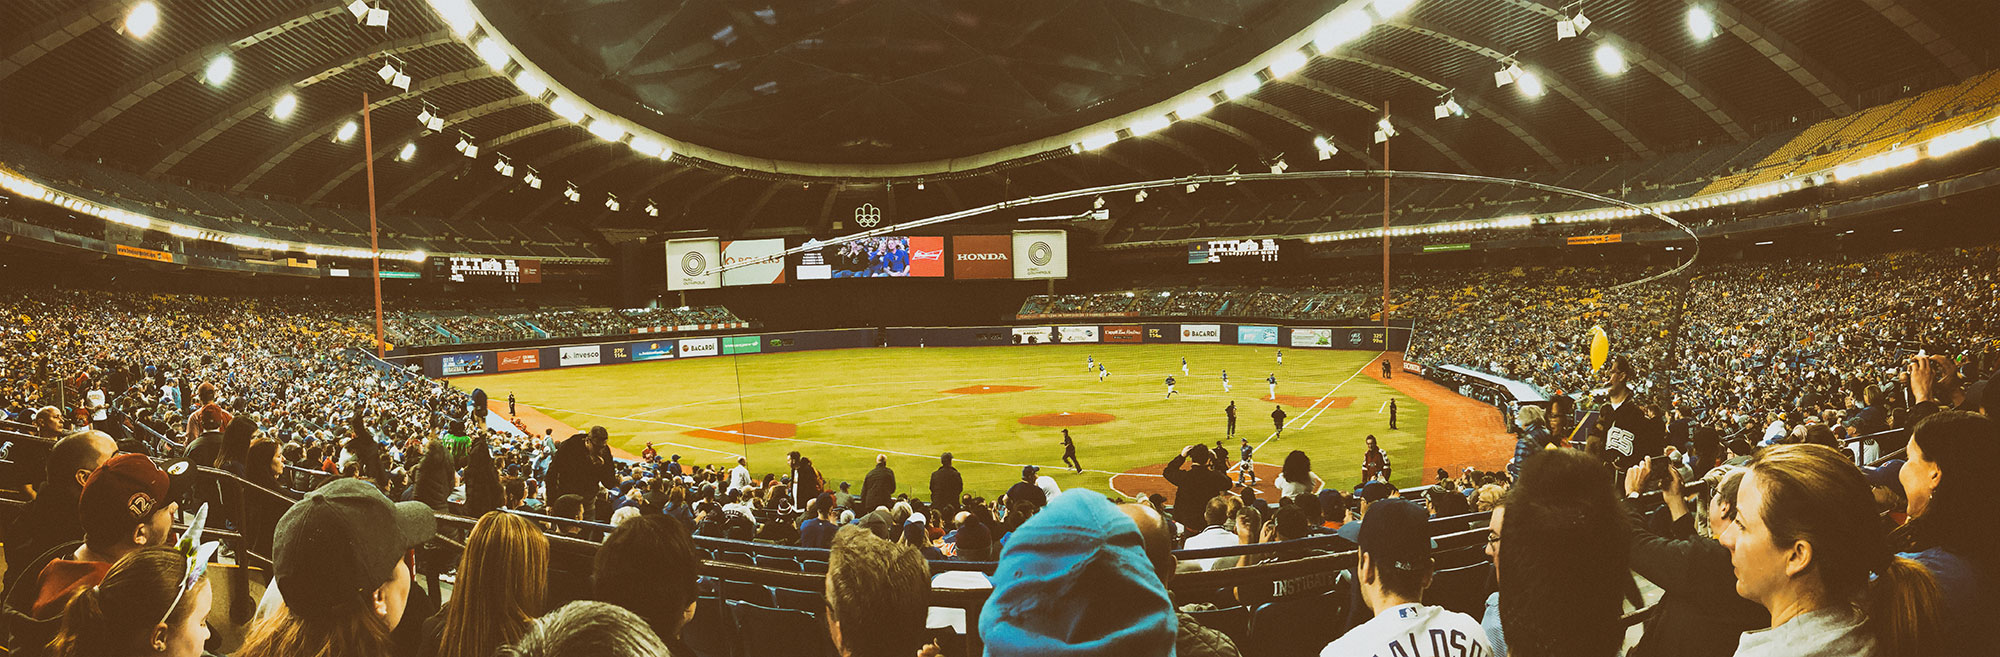 March 26th, Blue Jays baseball in Montreal